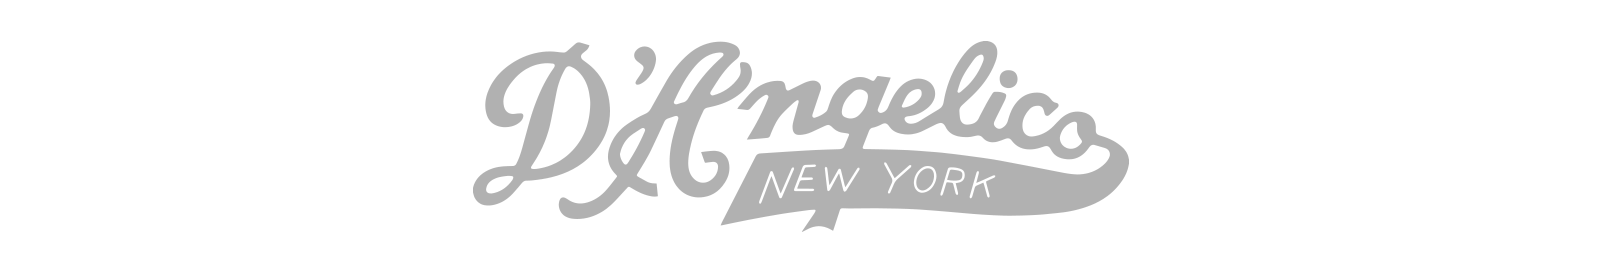 <h1>D'Angelico New York</h1>